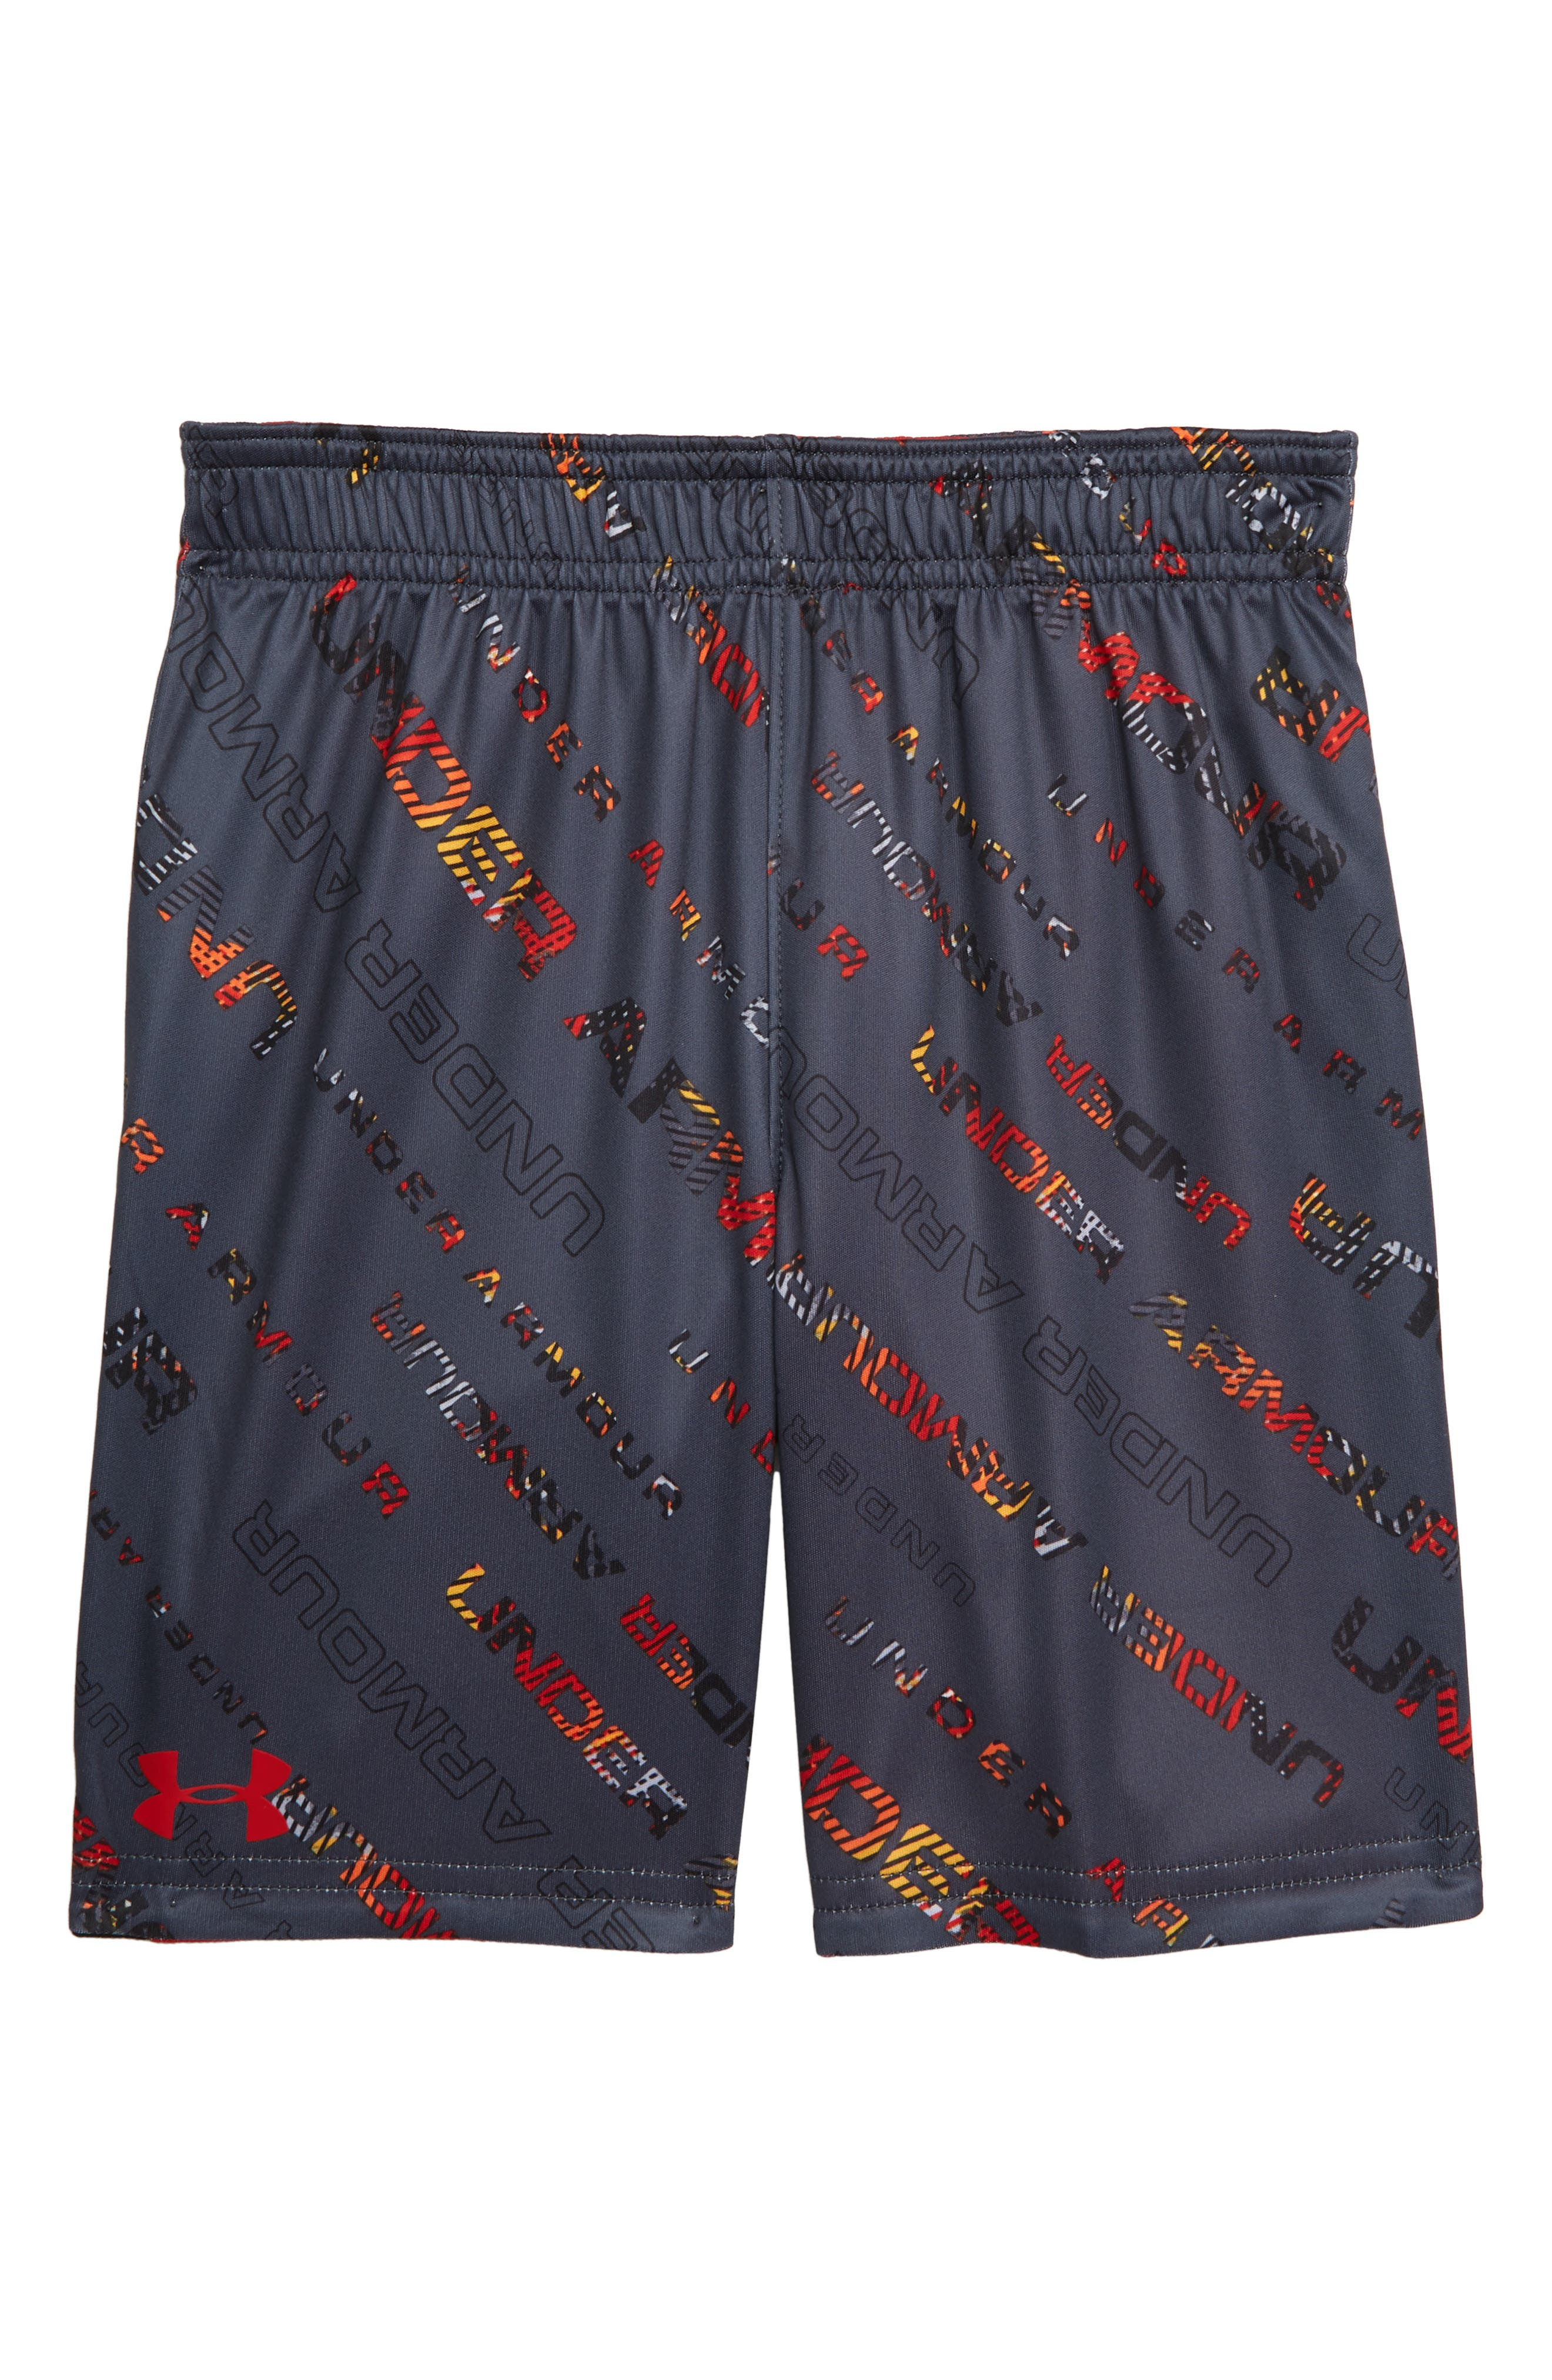 UNDER ARMOUR Lined Up HeatGear<sup>®</sup> Reversible Shorts, Main, color, PITCH GRAY